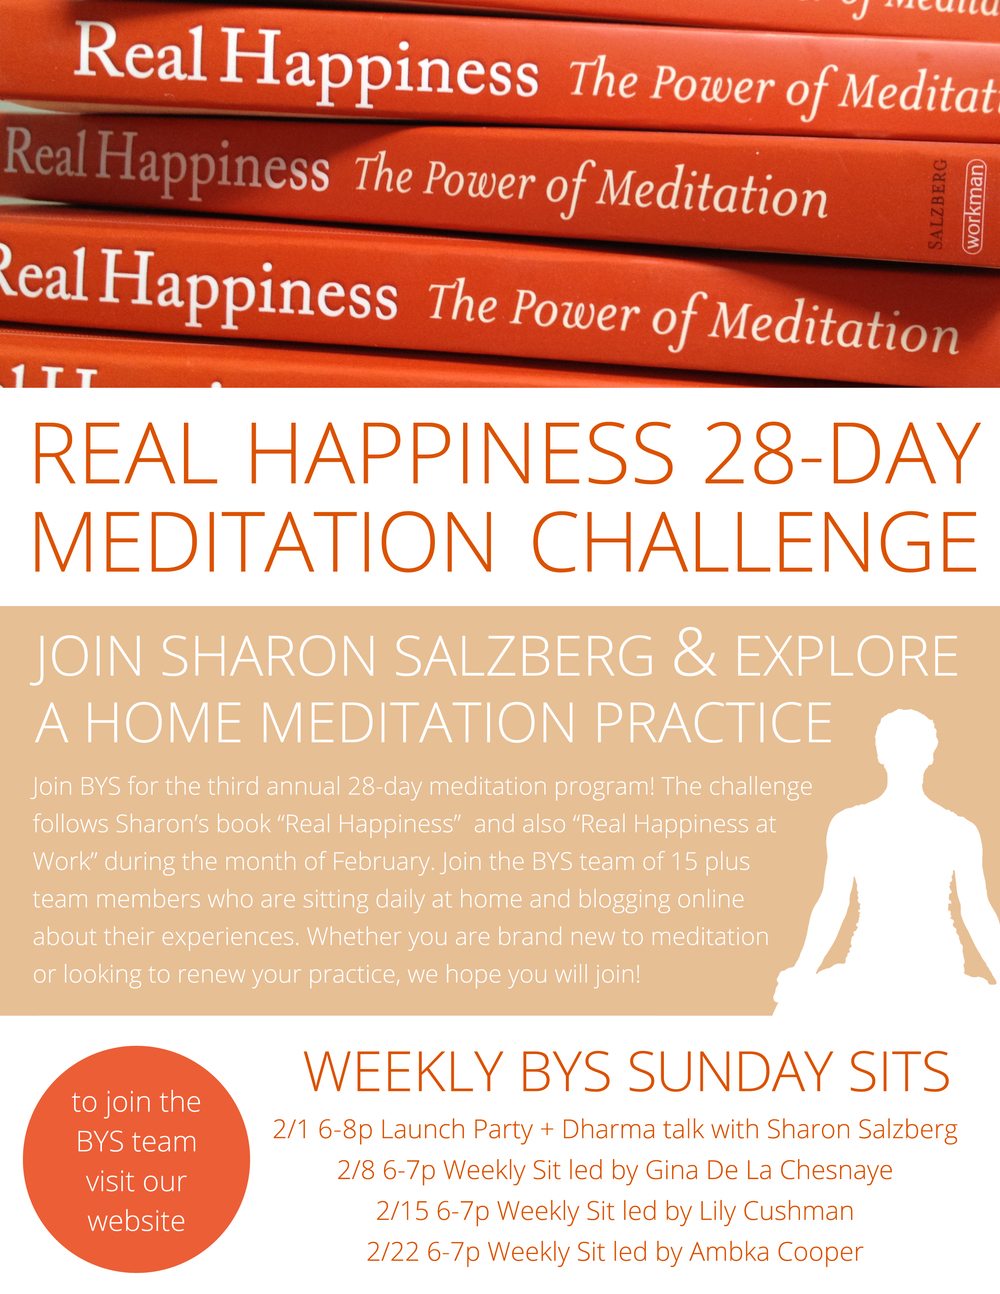 Real Happiness Sharon Salzberg